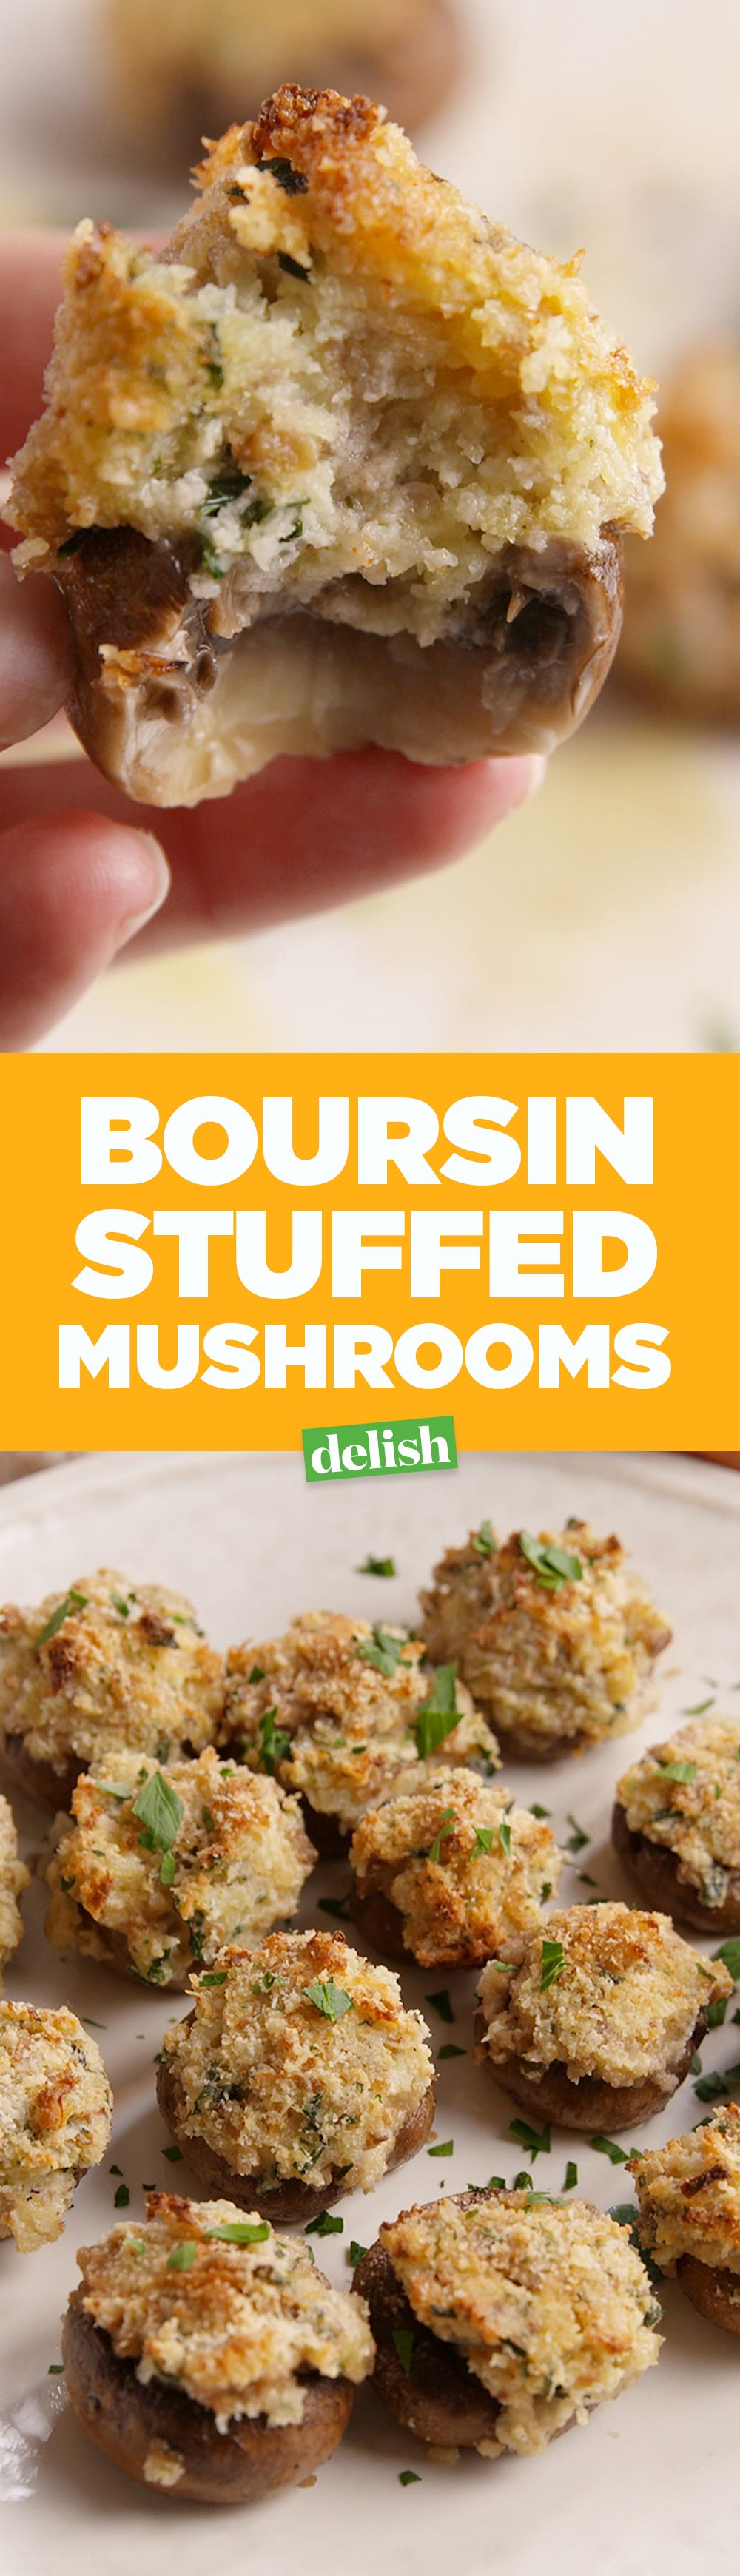 Boursin-Stuffed Mushrooms | Recipe | Stuffed mushroom recipes ...